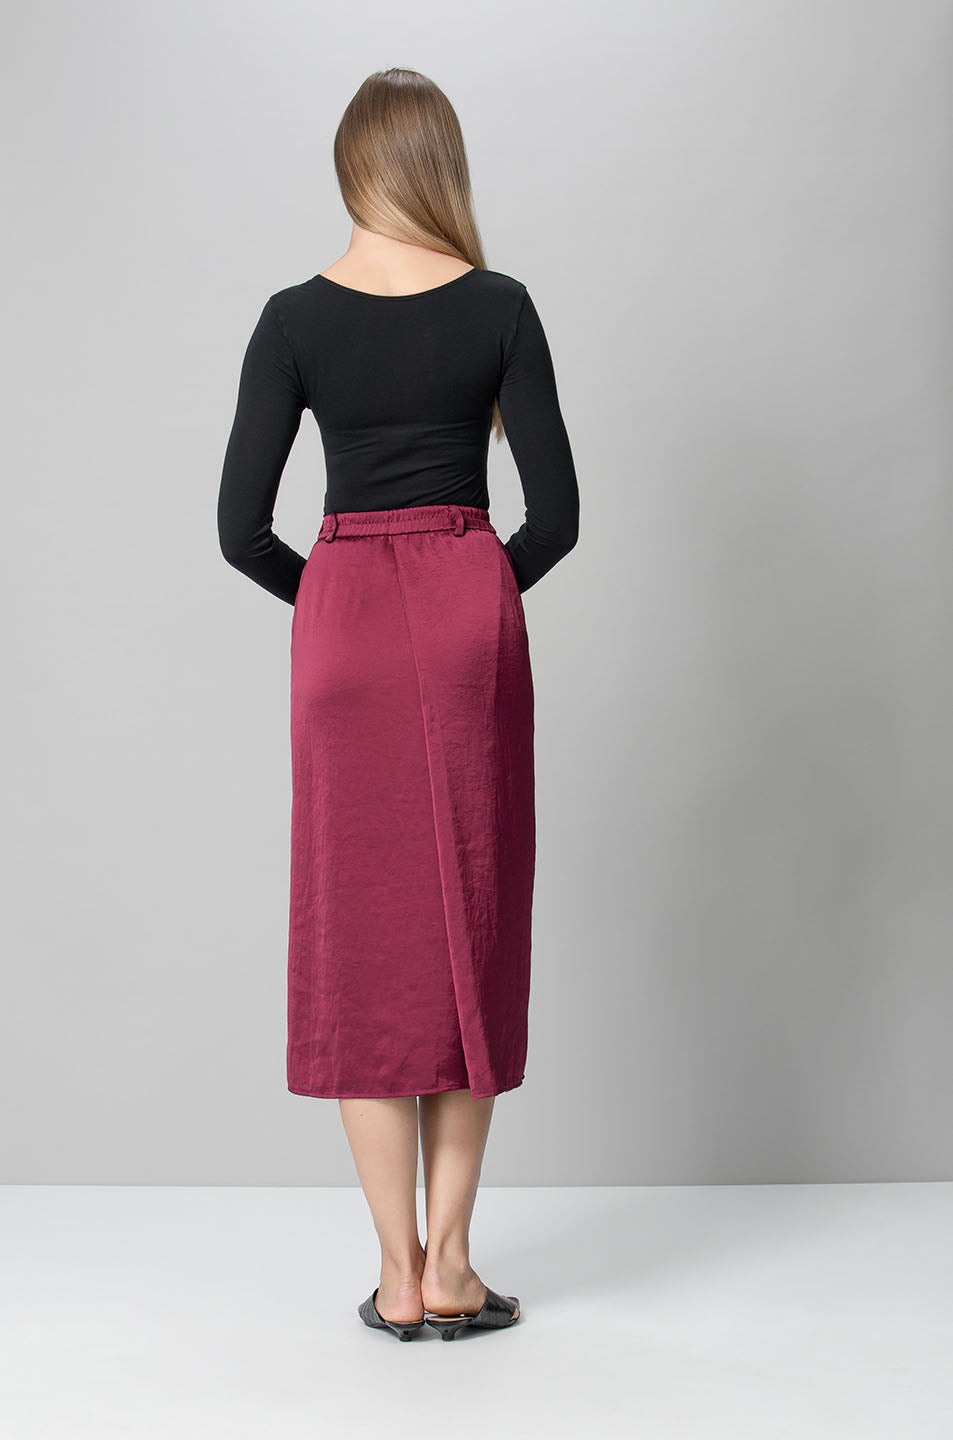 Jacona Skirt - The R Collective